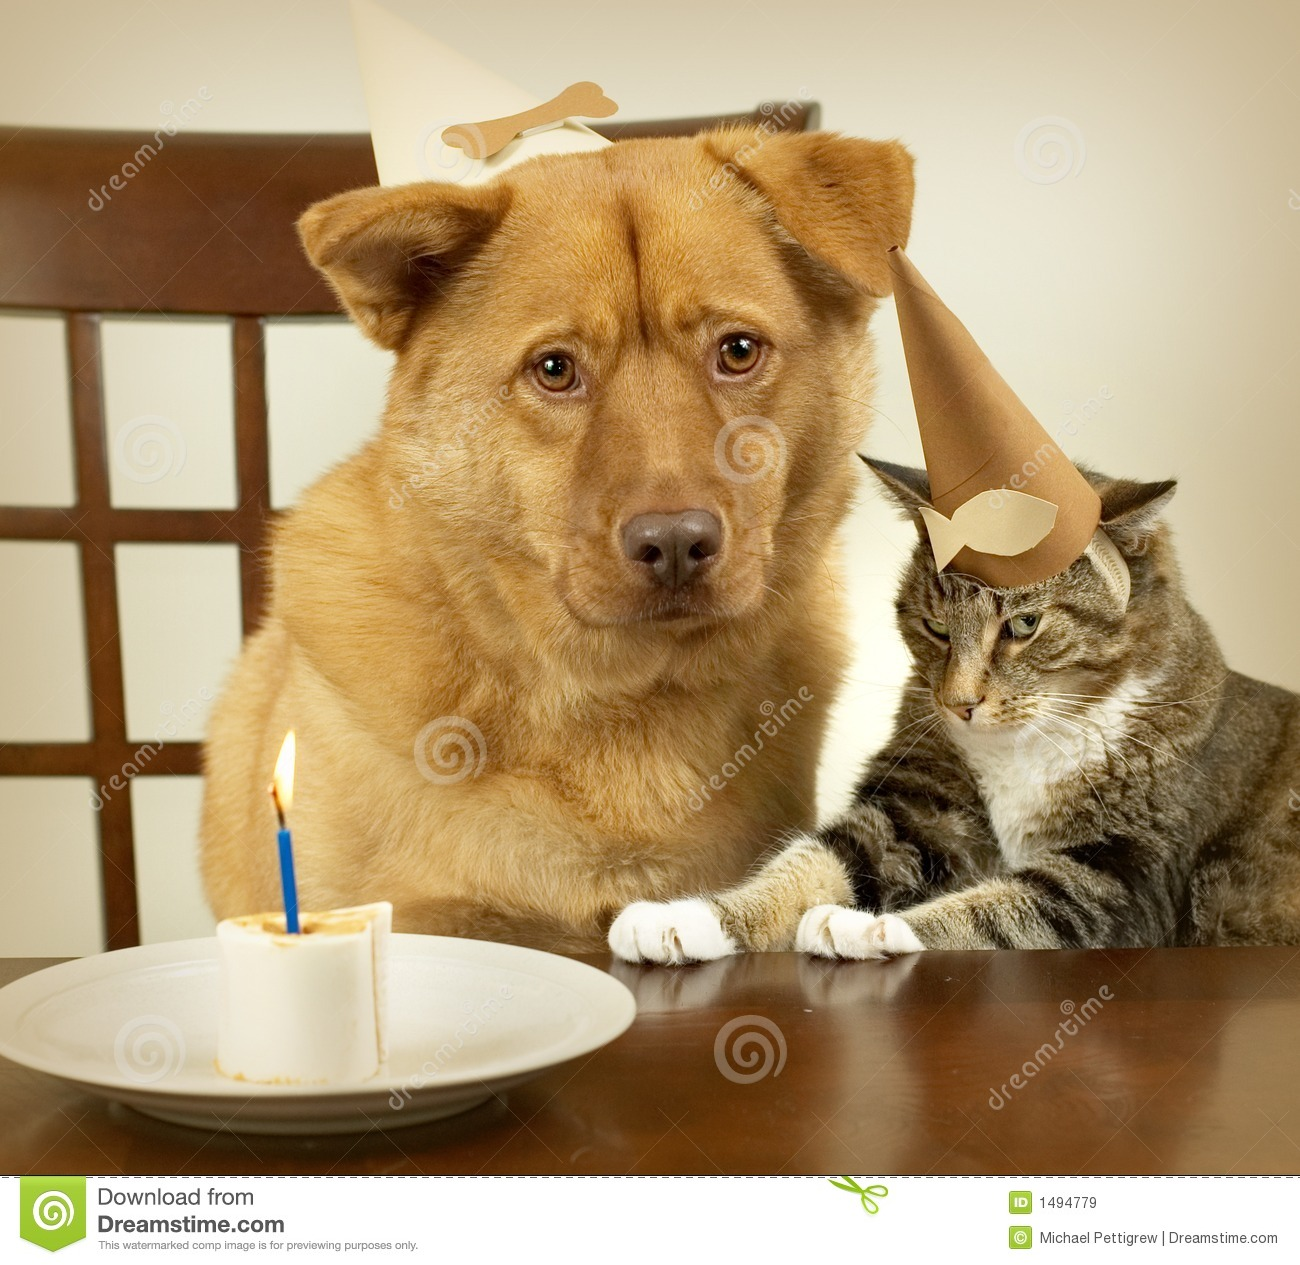 ... Cat Celebrating Birthday Royalty Free Stock Images - Image: 1494779